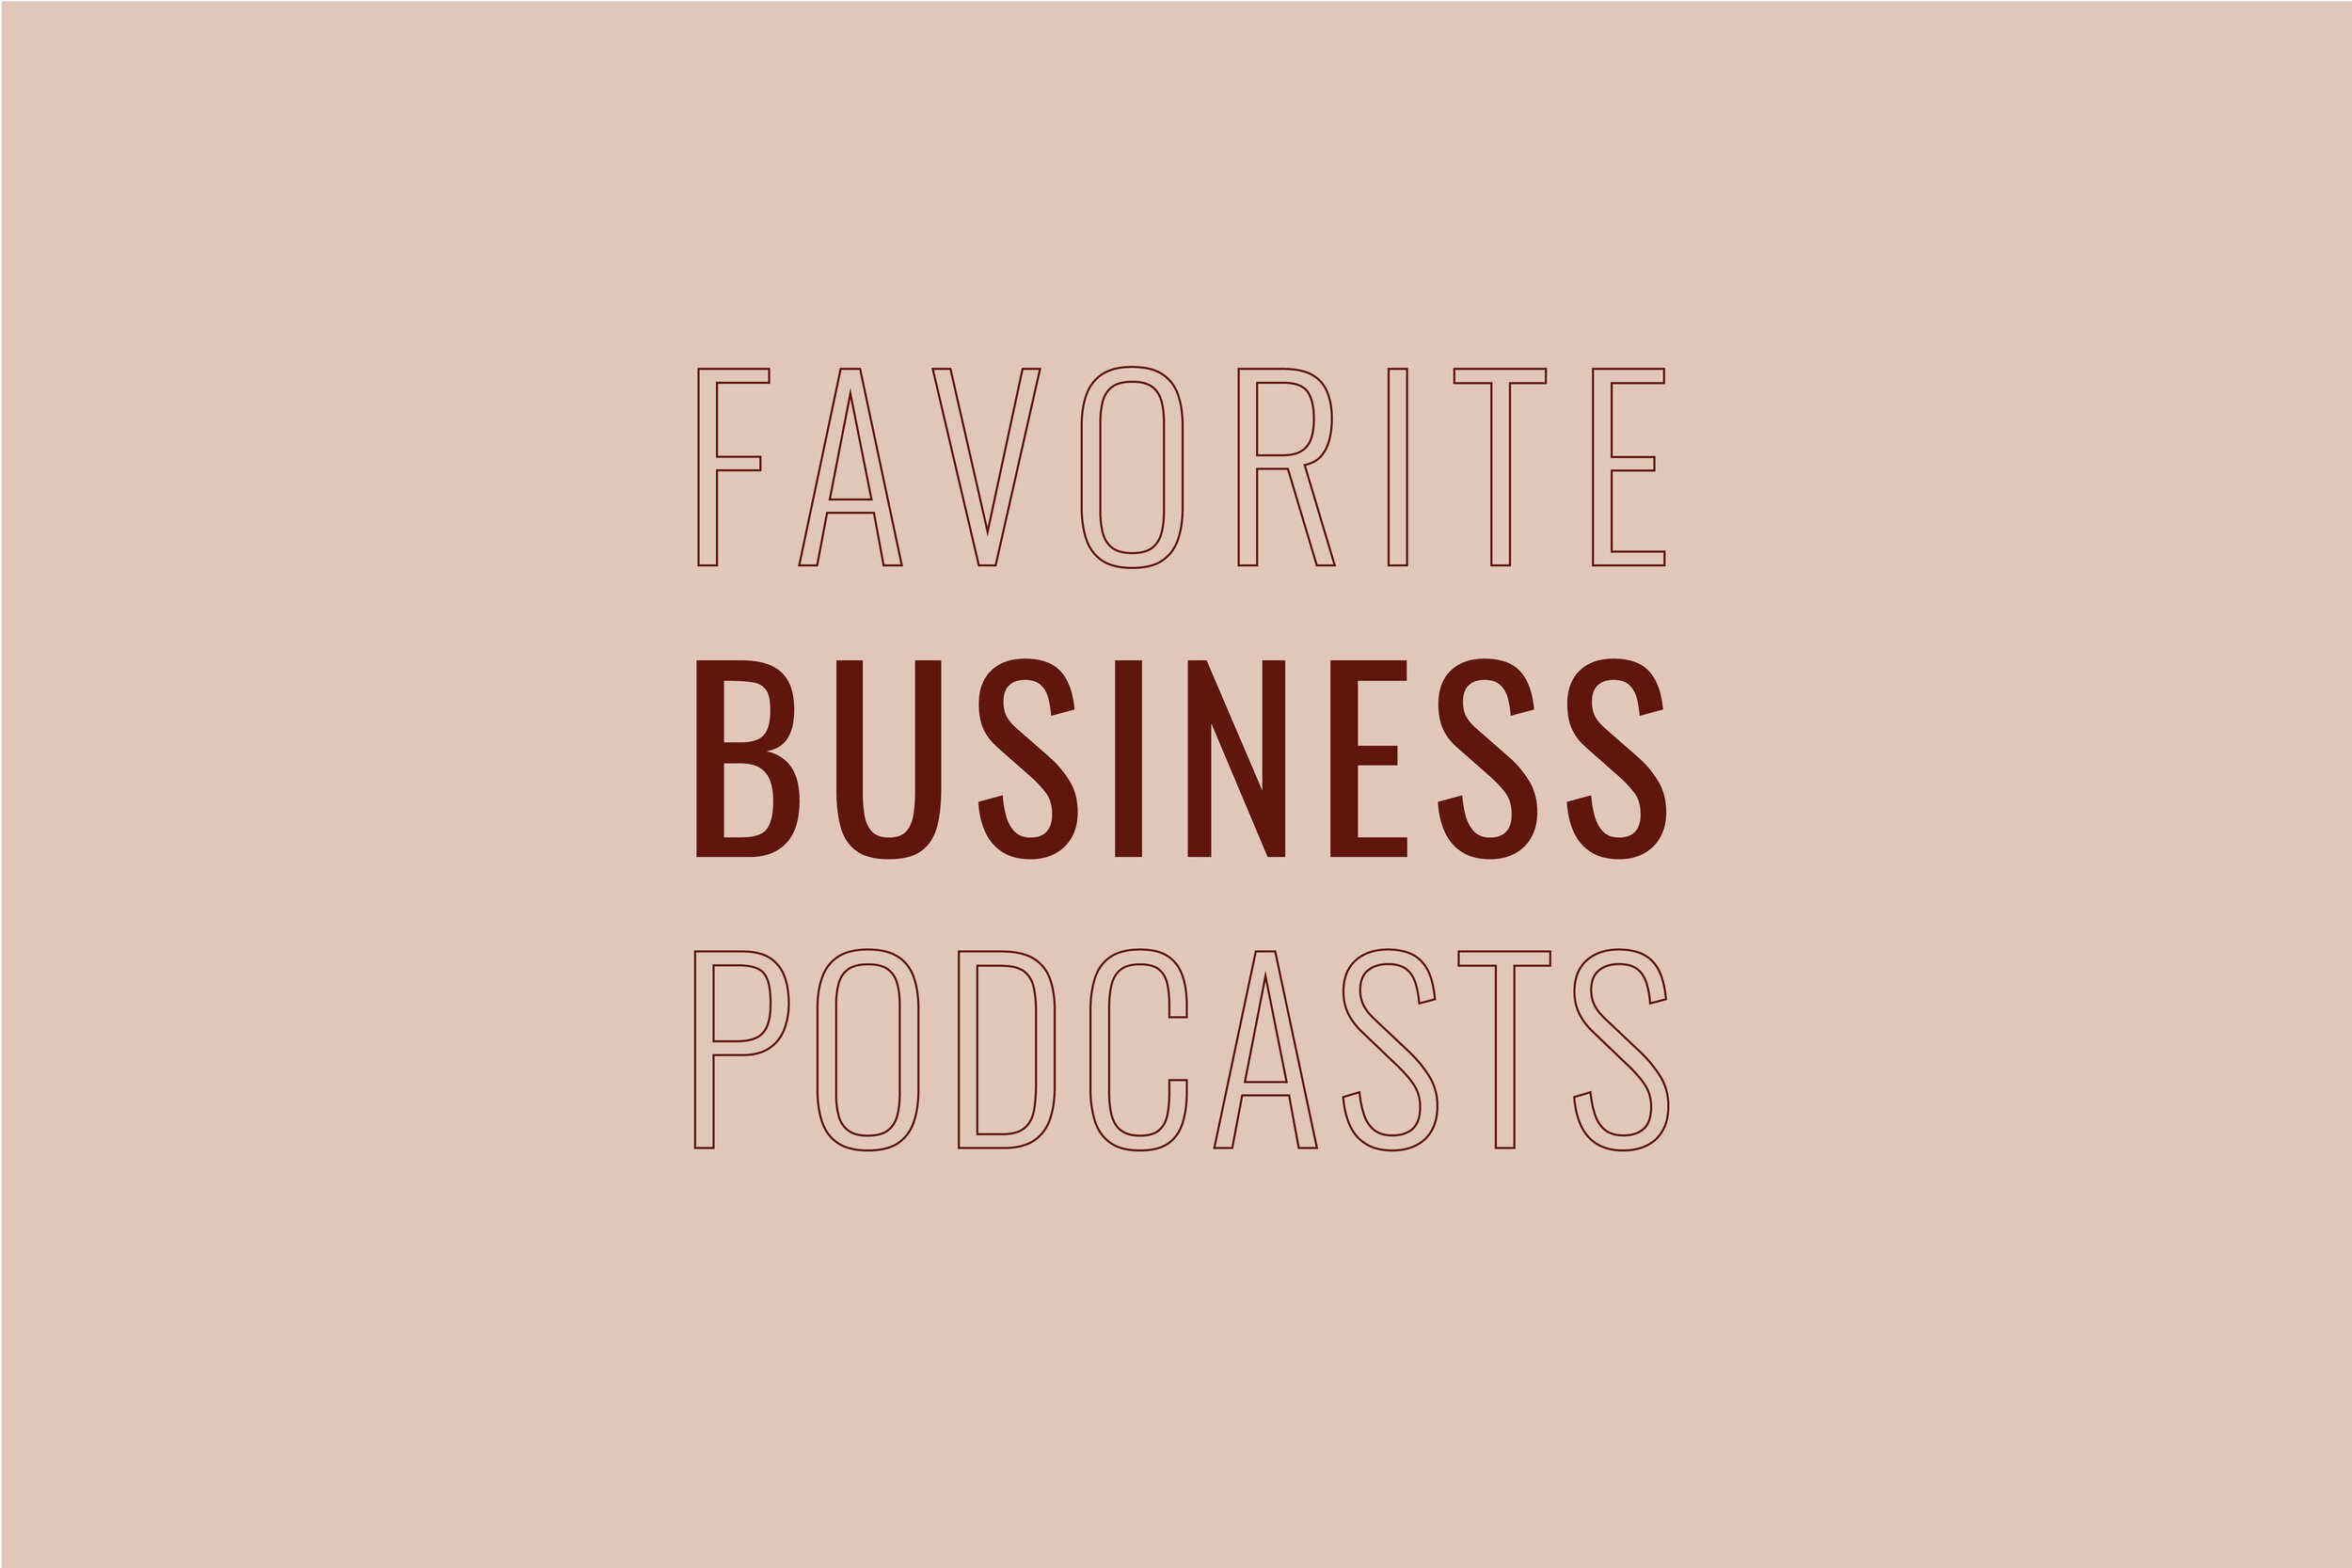 businesspodcast-01.jpg